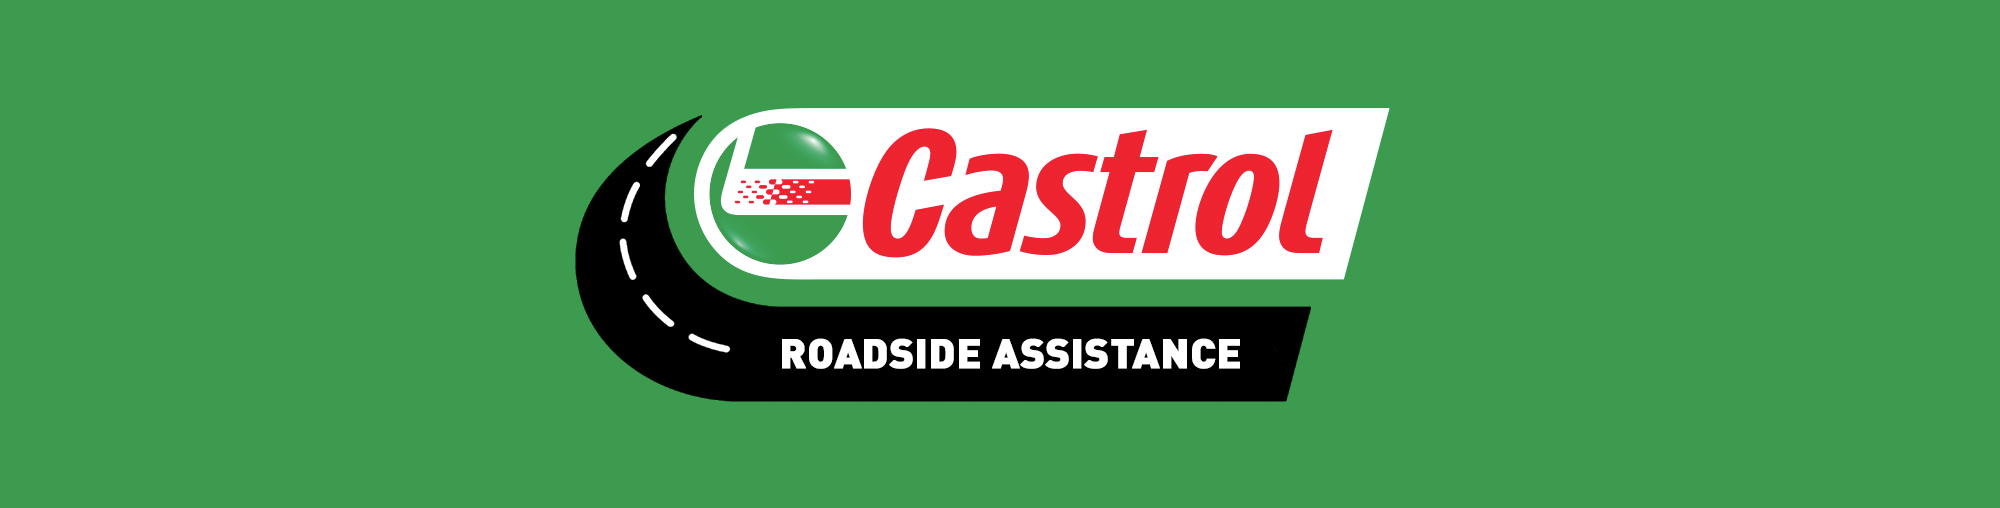 Castrol Roadside Assistance